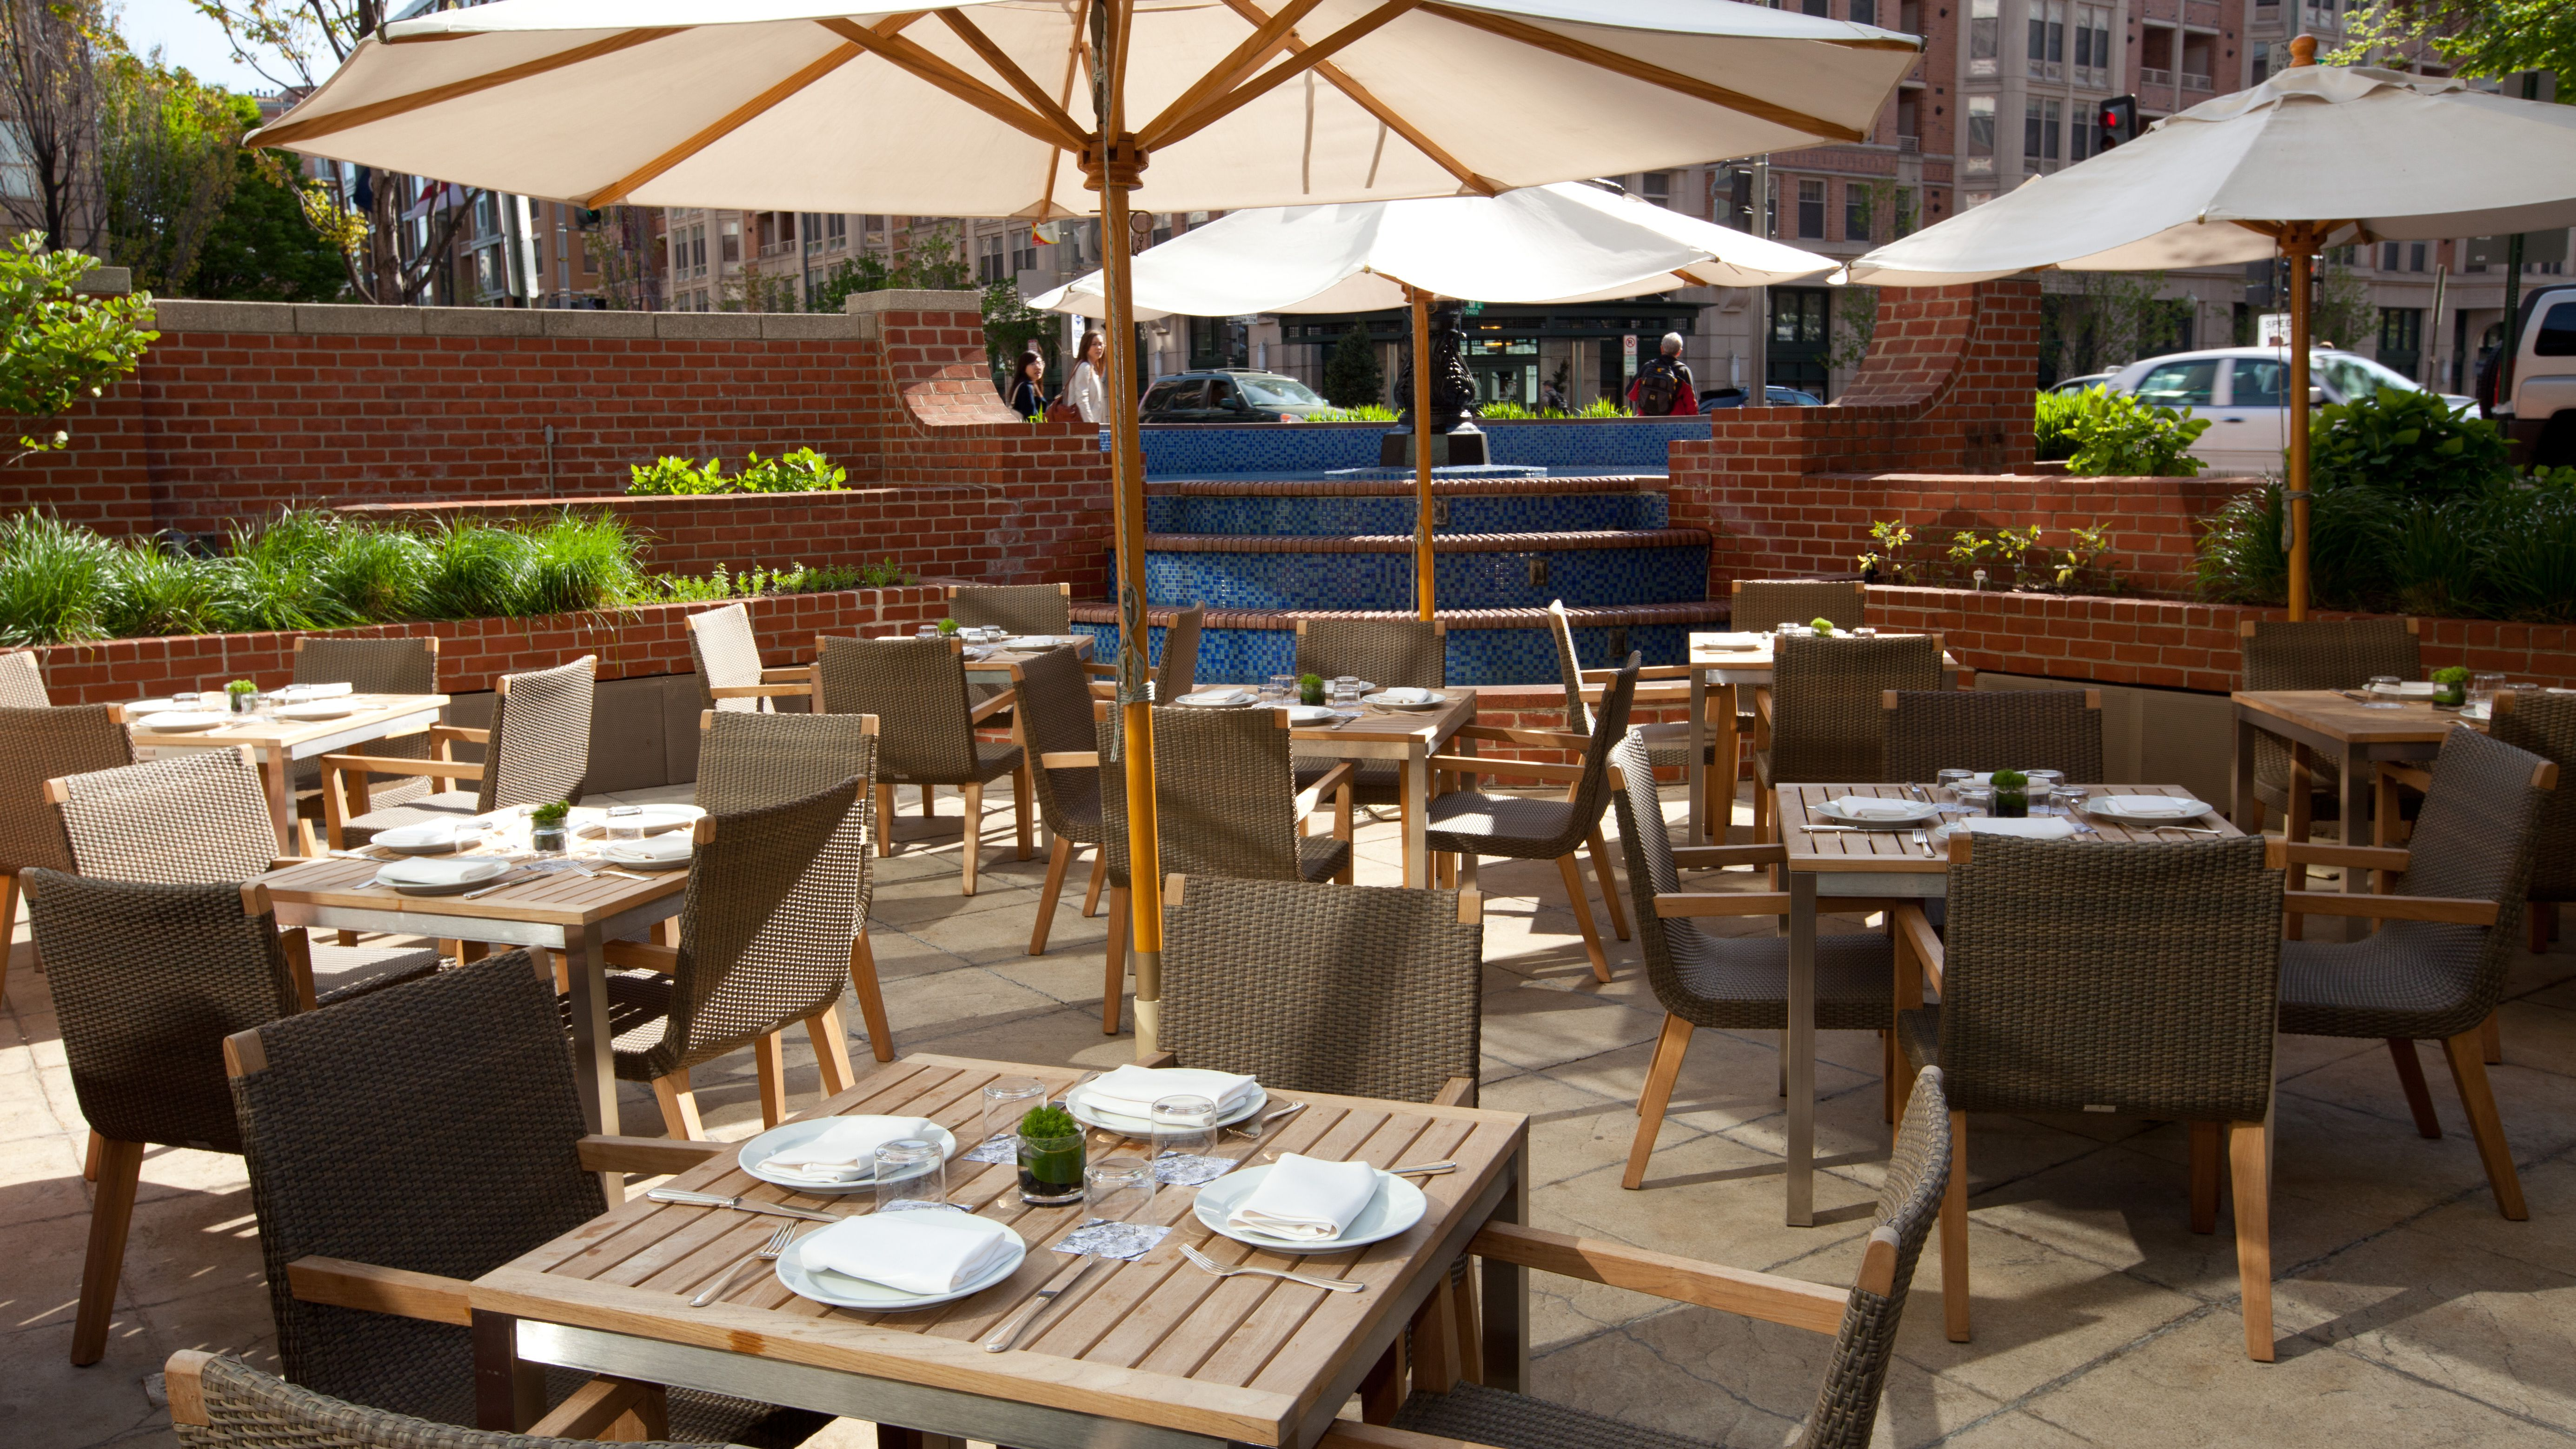 Best Places To Dine Outdoors In Washington Dc